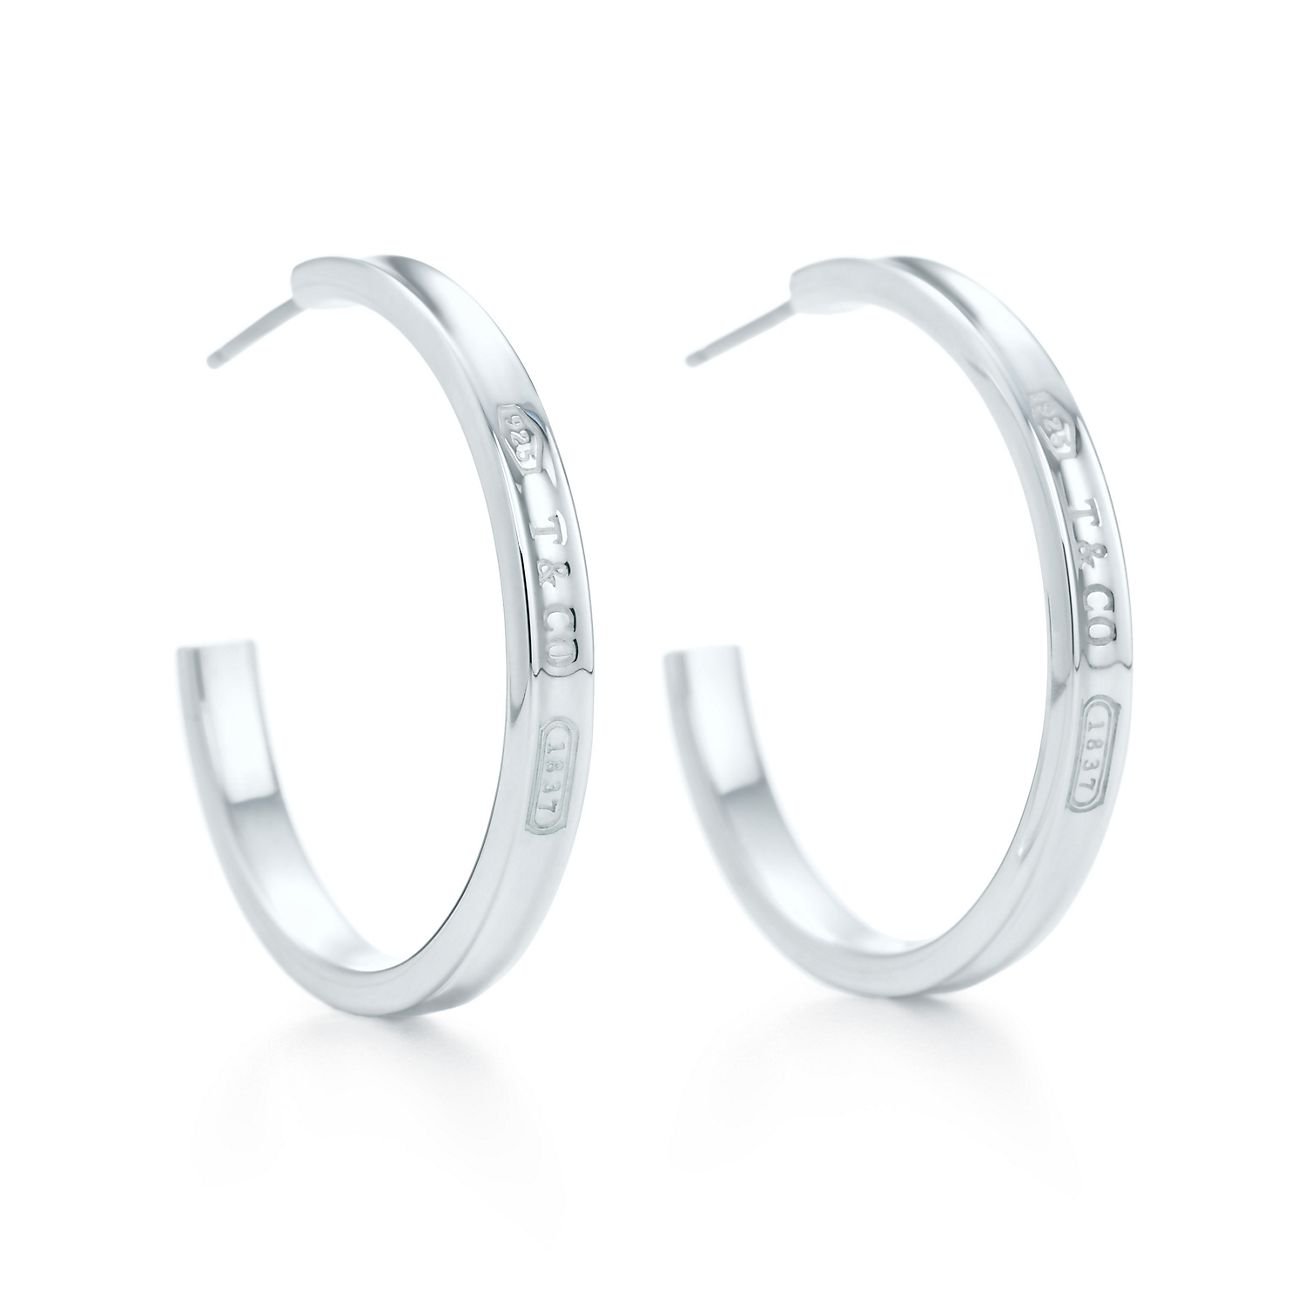 Tiffany 1837 Hoop Earrings